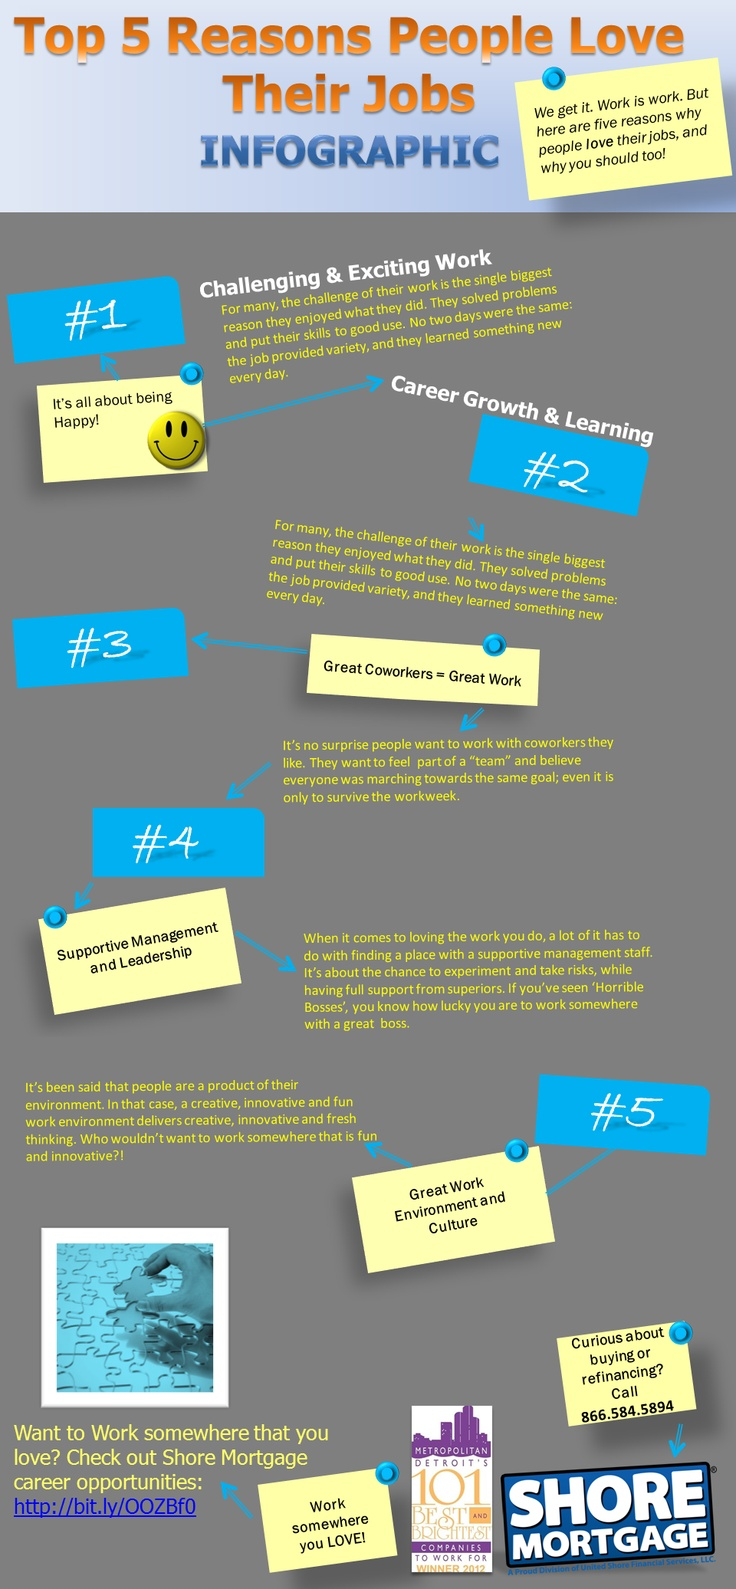 Job Infographics: Top 5 reasons people love their jobs. #careers